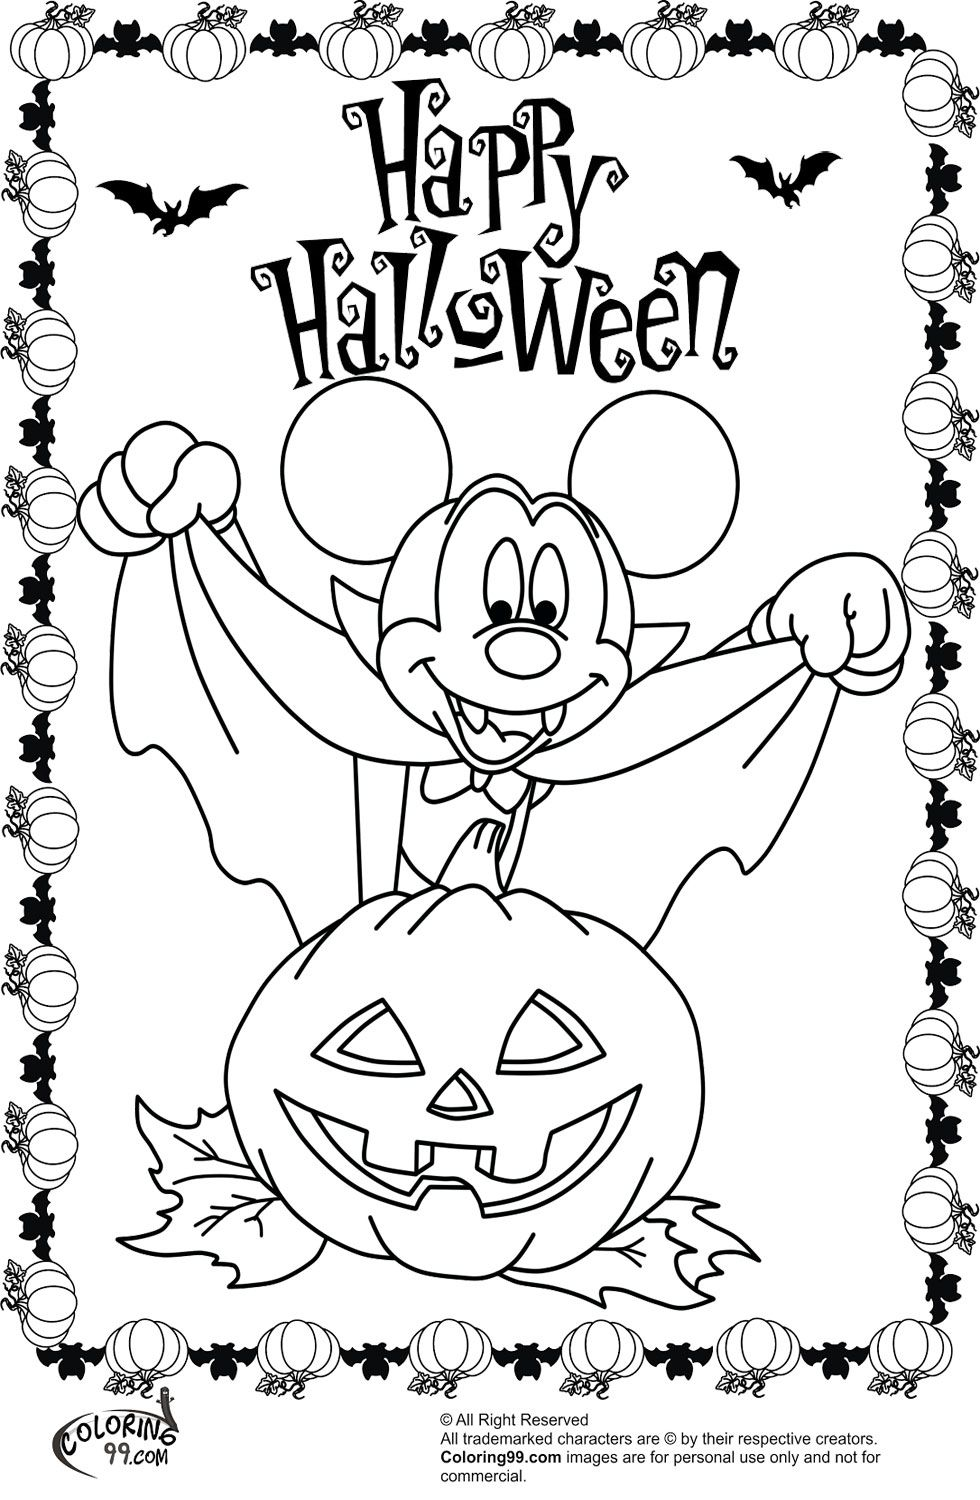 Minnie and Mickey Mouse Coloring Pages for Halloween | Team colors